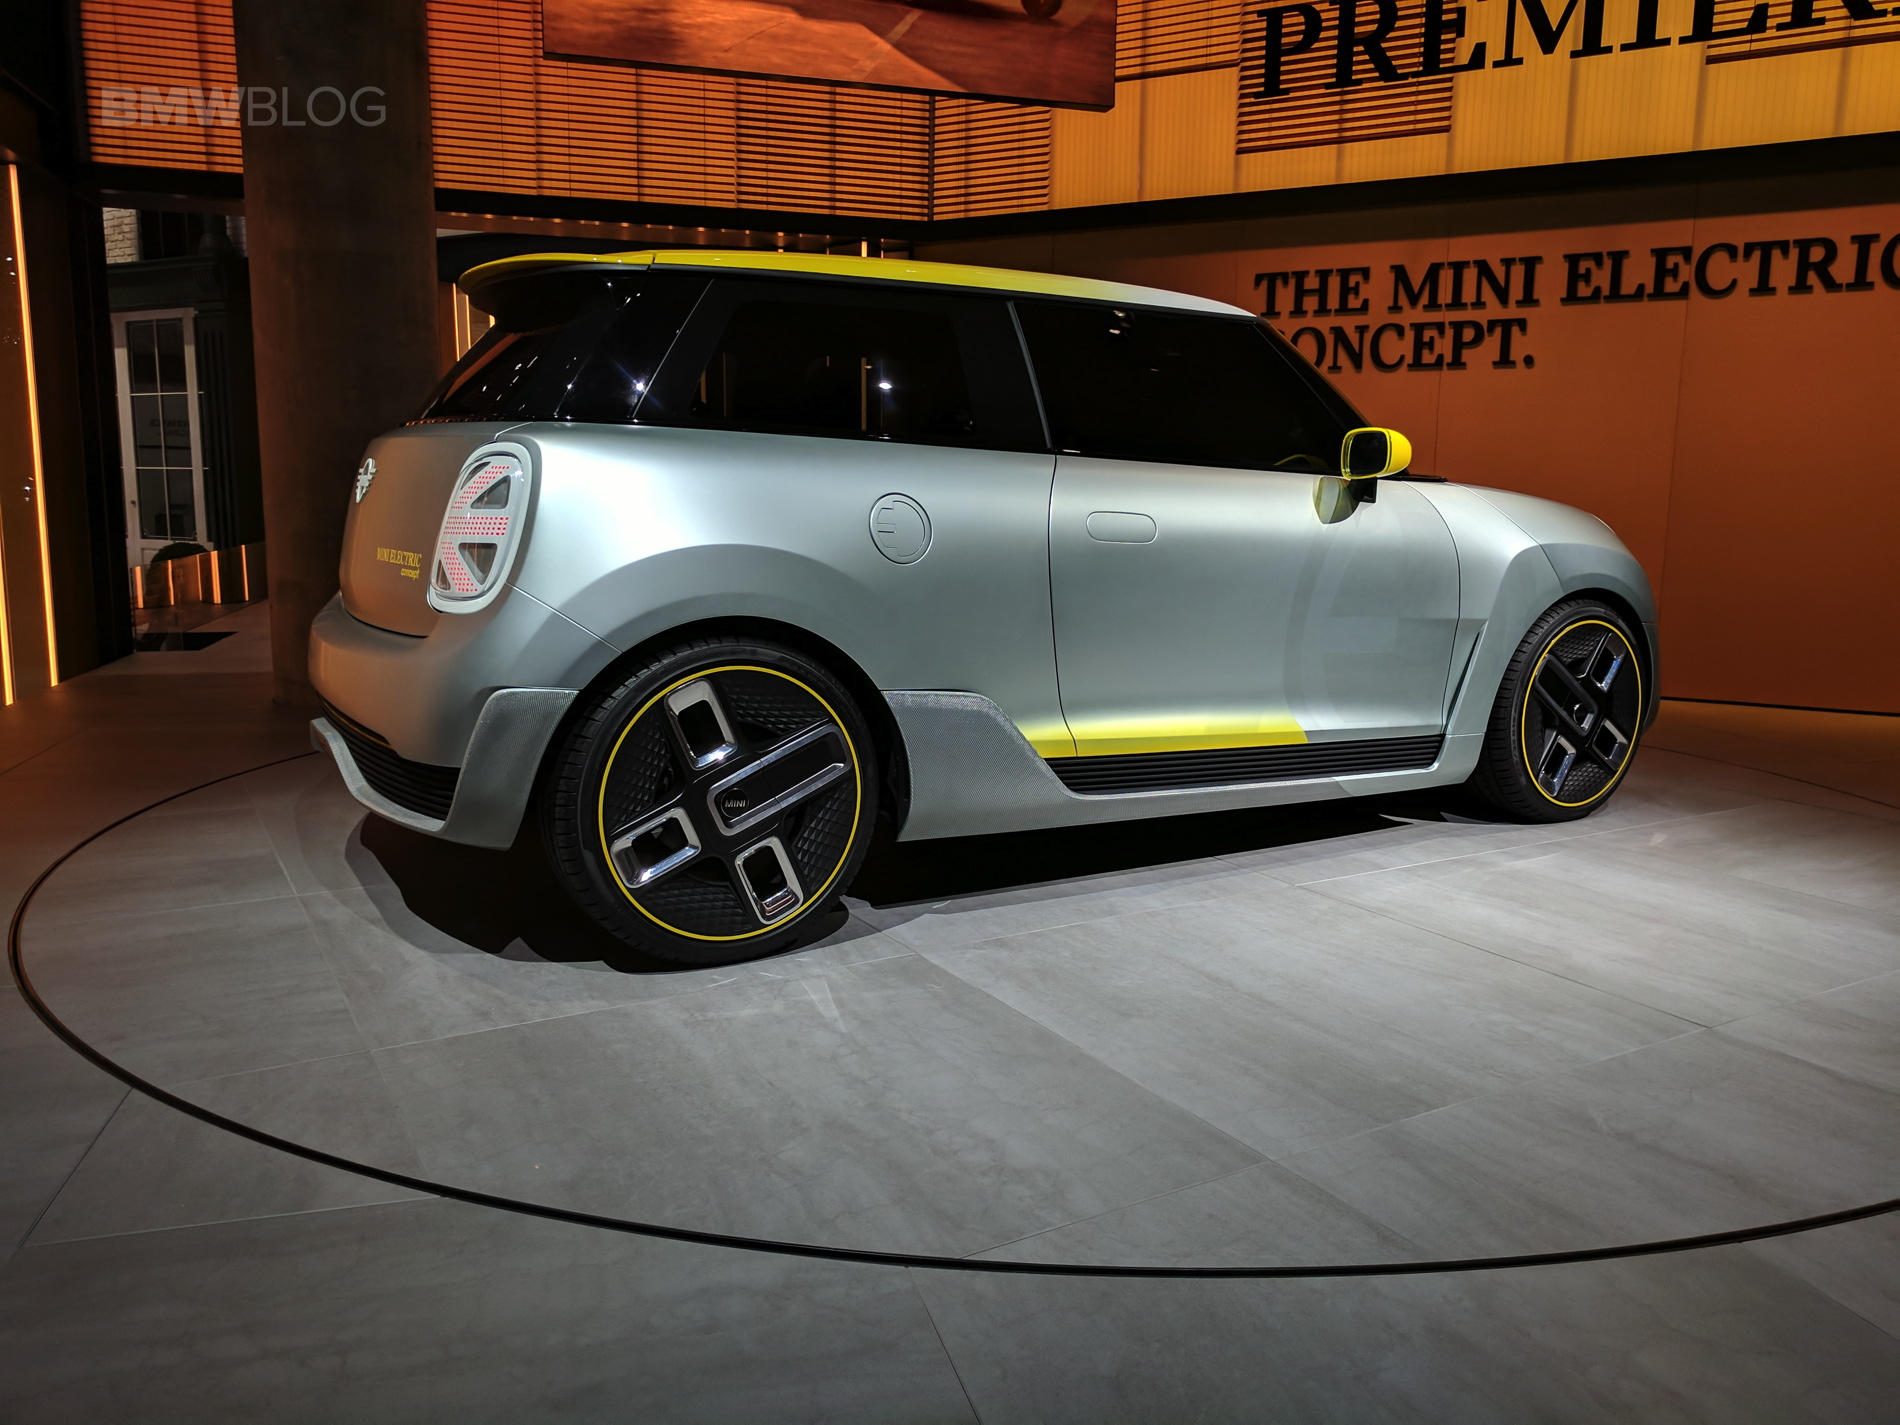 Mini Electric Concept Frankfurt 01 830x623